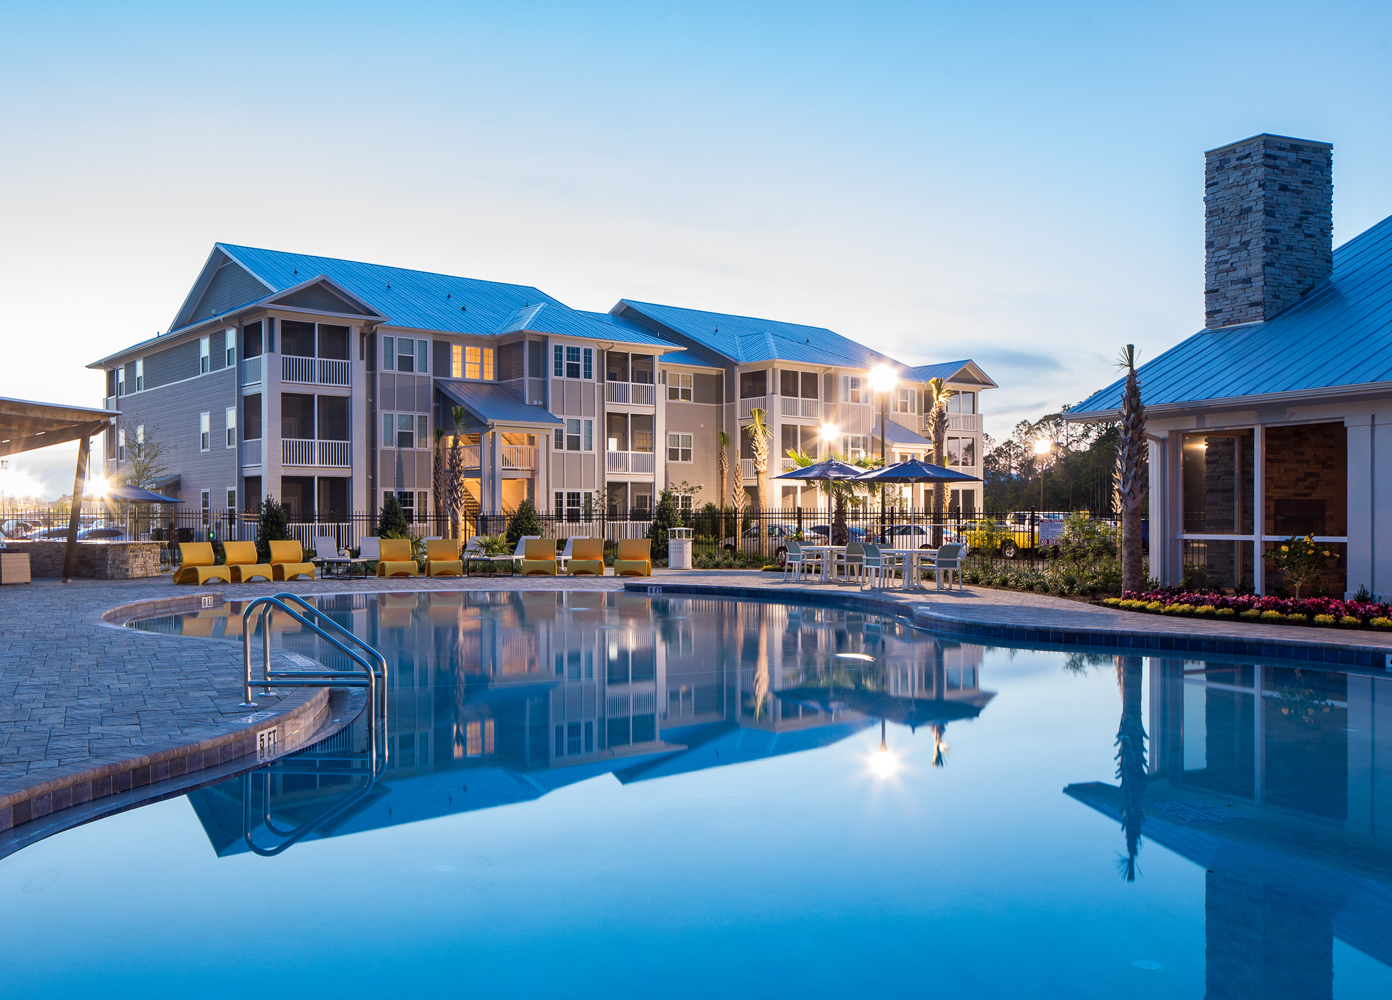 The St. Joe Company and HomeCorp Add 120 Apartment Homes at Pier Park Crossings in Panama City Beach, Florida